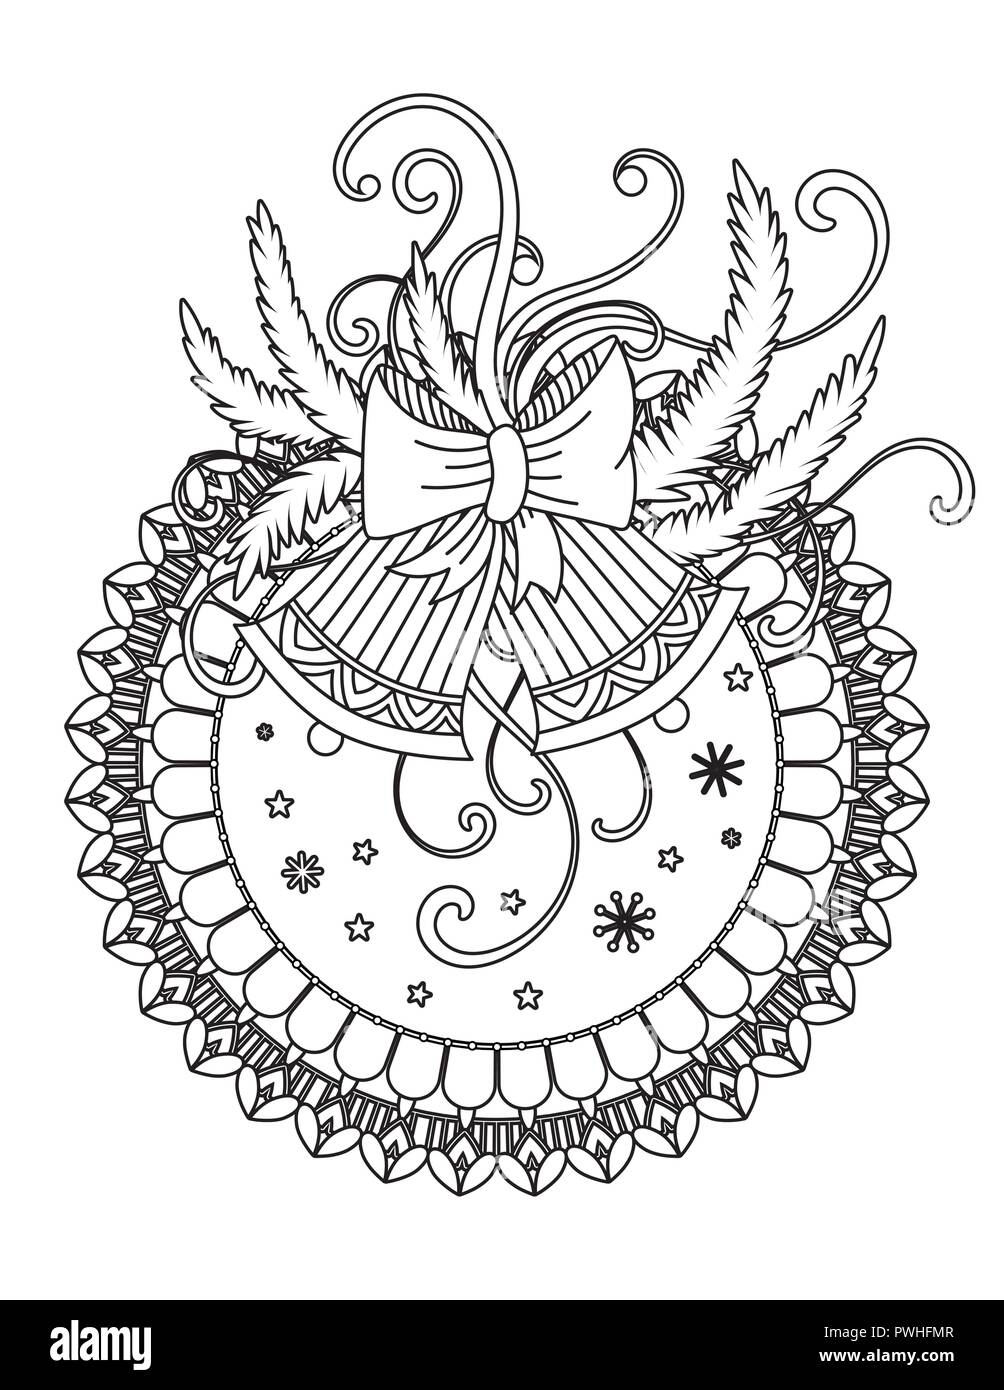 christmas mandala coloring page adult coloring book holiday decor bells balls and ribbons hand drawn vector illustration